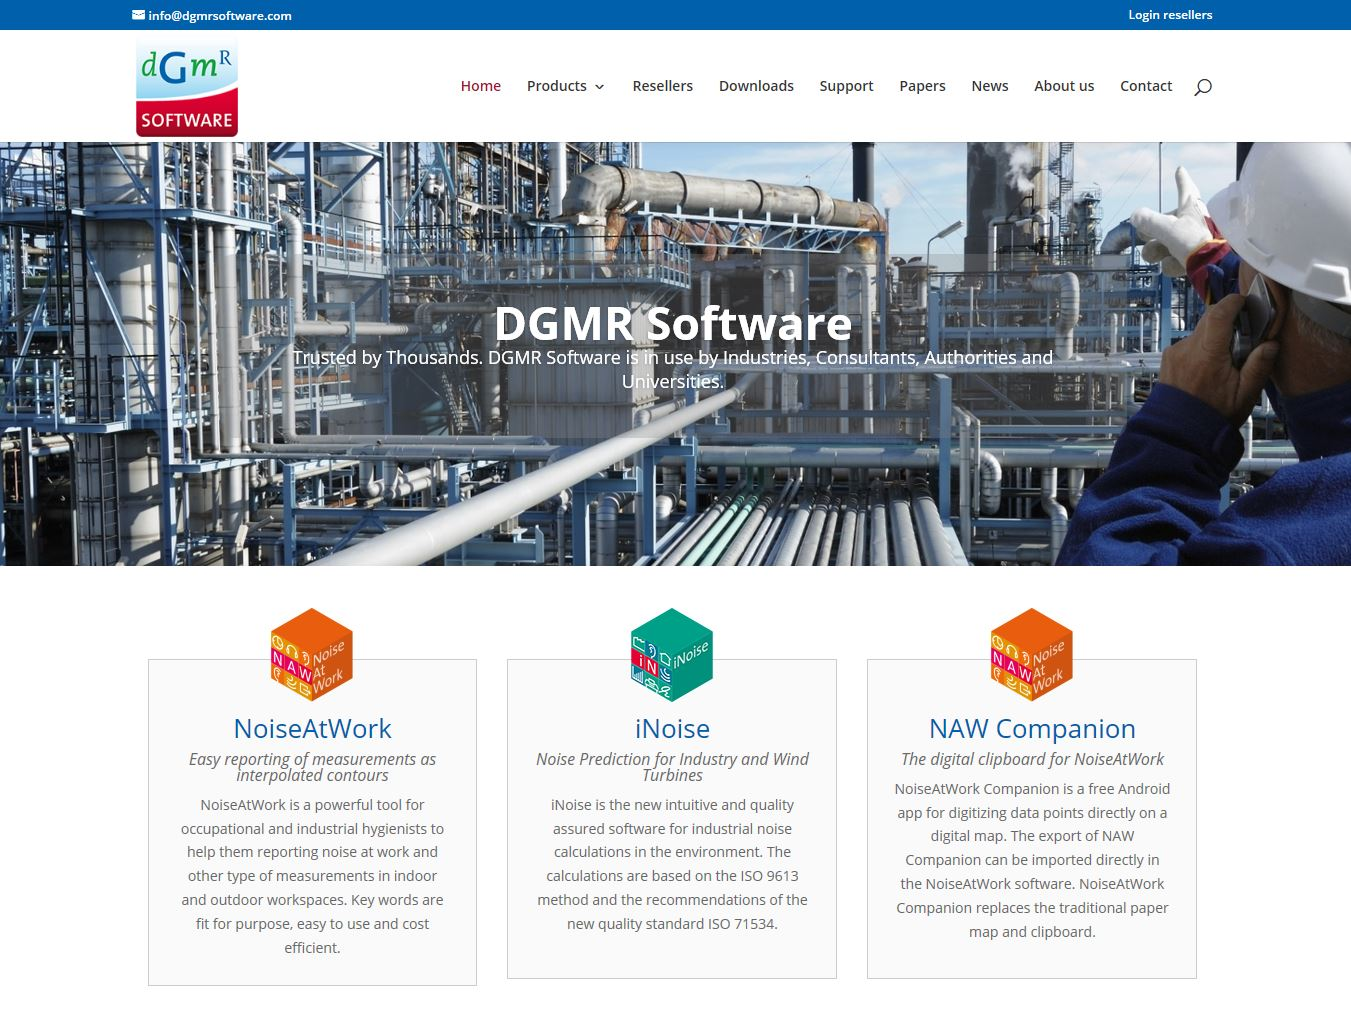 DGMR Software | sustainability, safety, health and environment